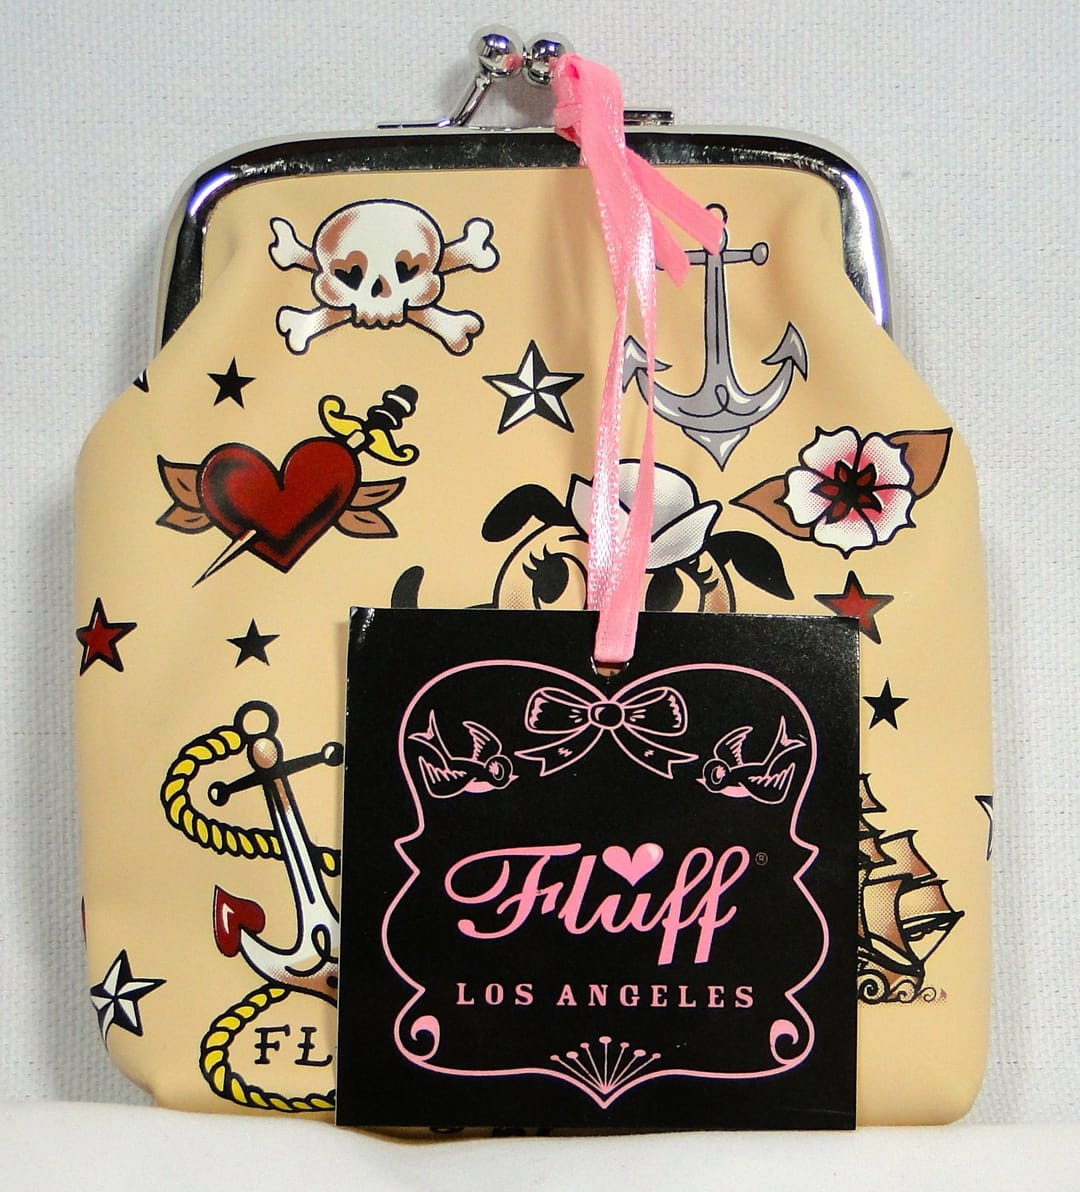 Tattooed wallet from Fluff Los Angeles